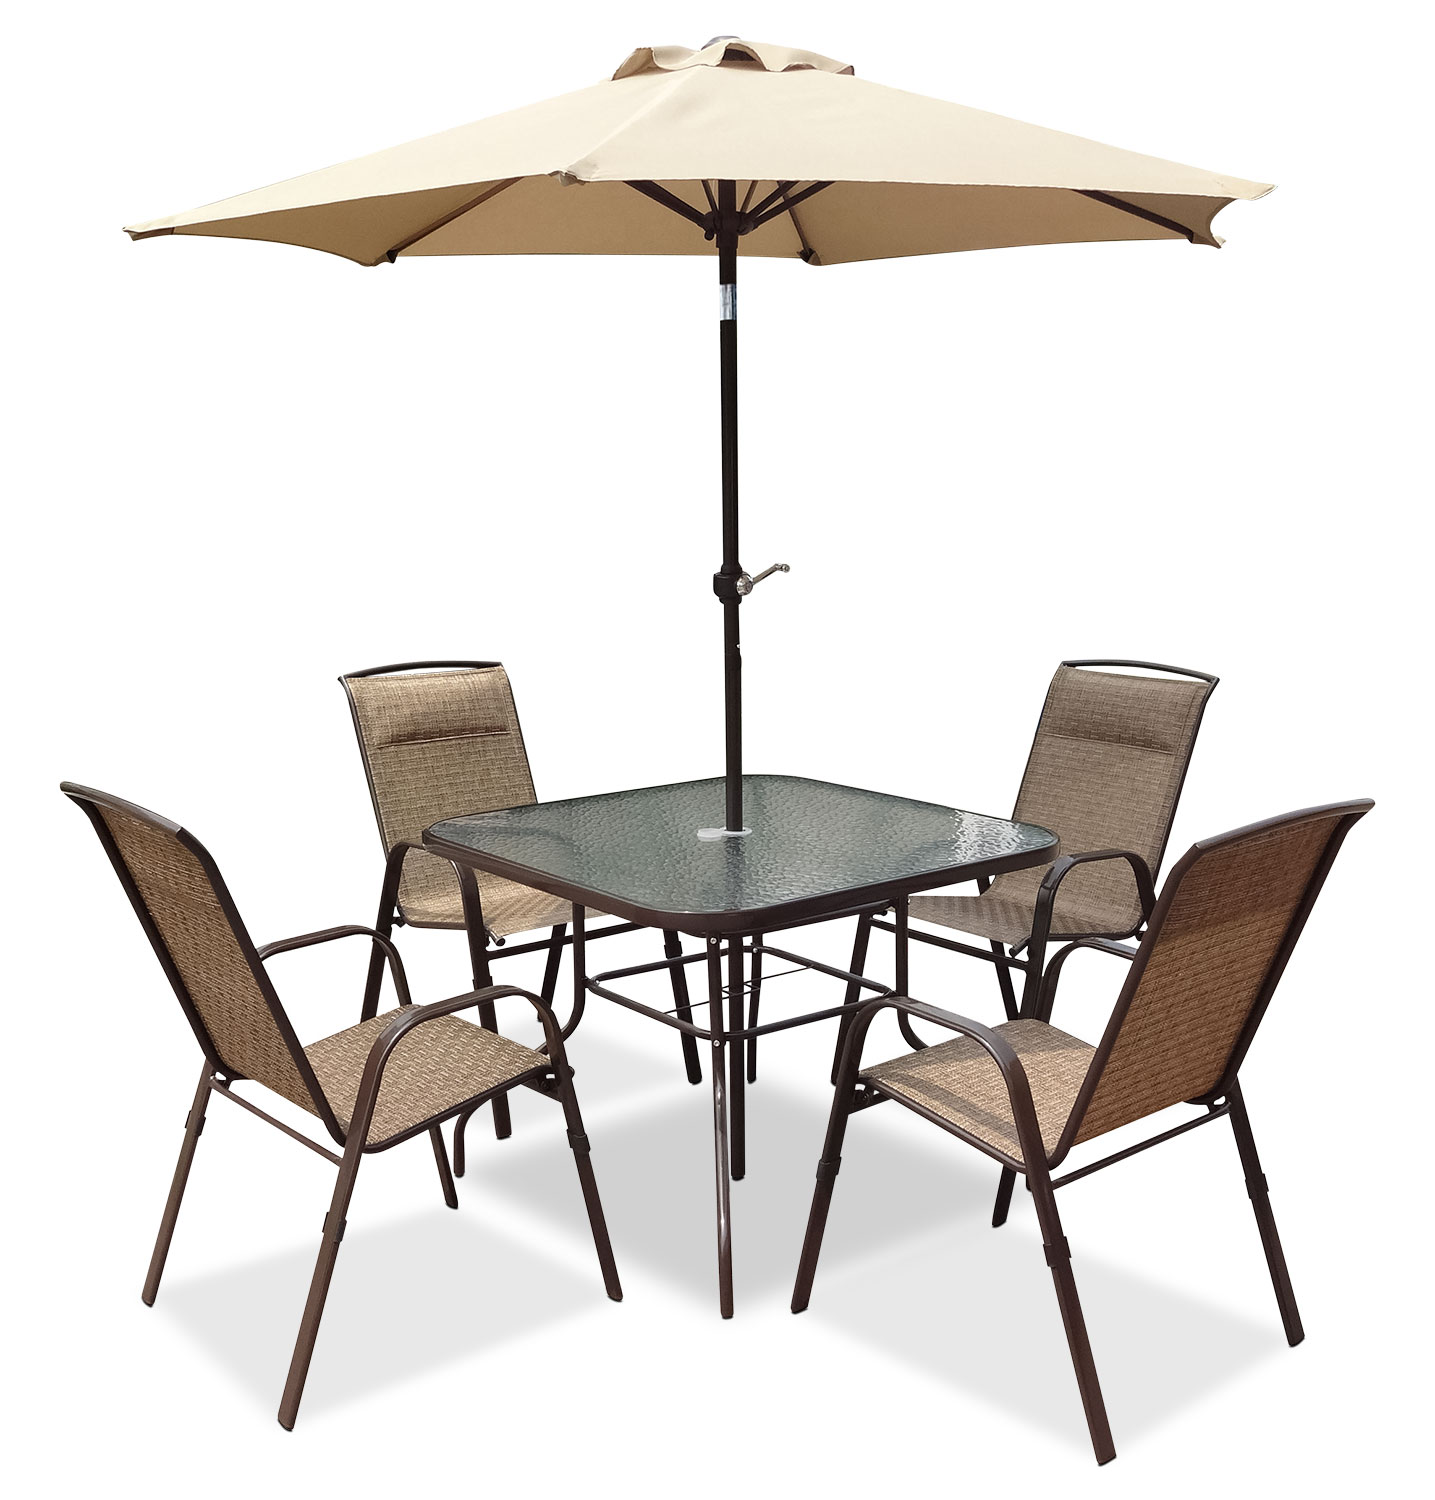 Outdoor Furniture - CorLiving 6-Piece Patio Dining Set with Umbrella